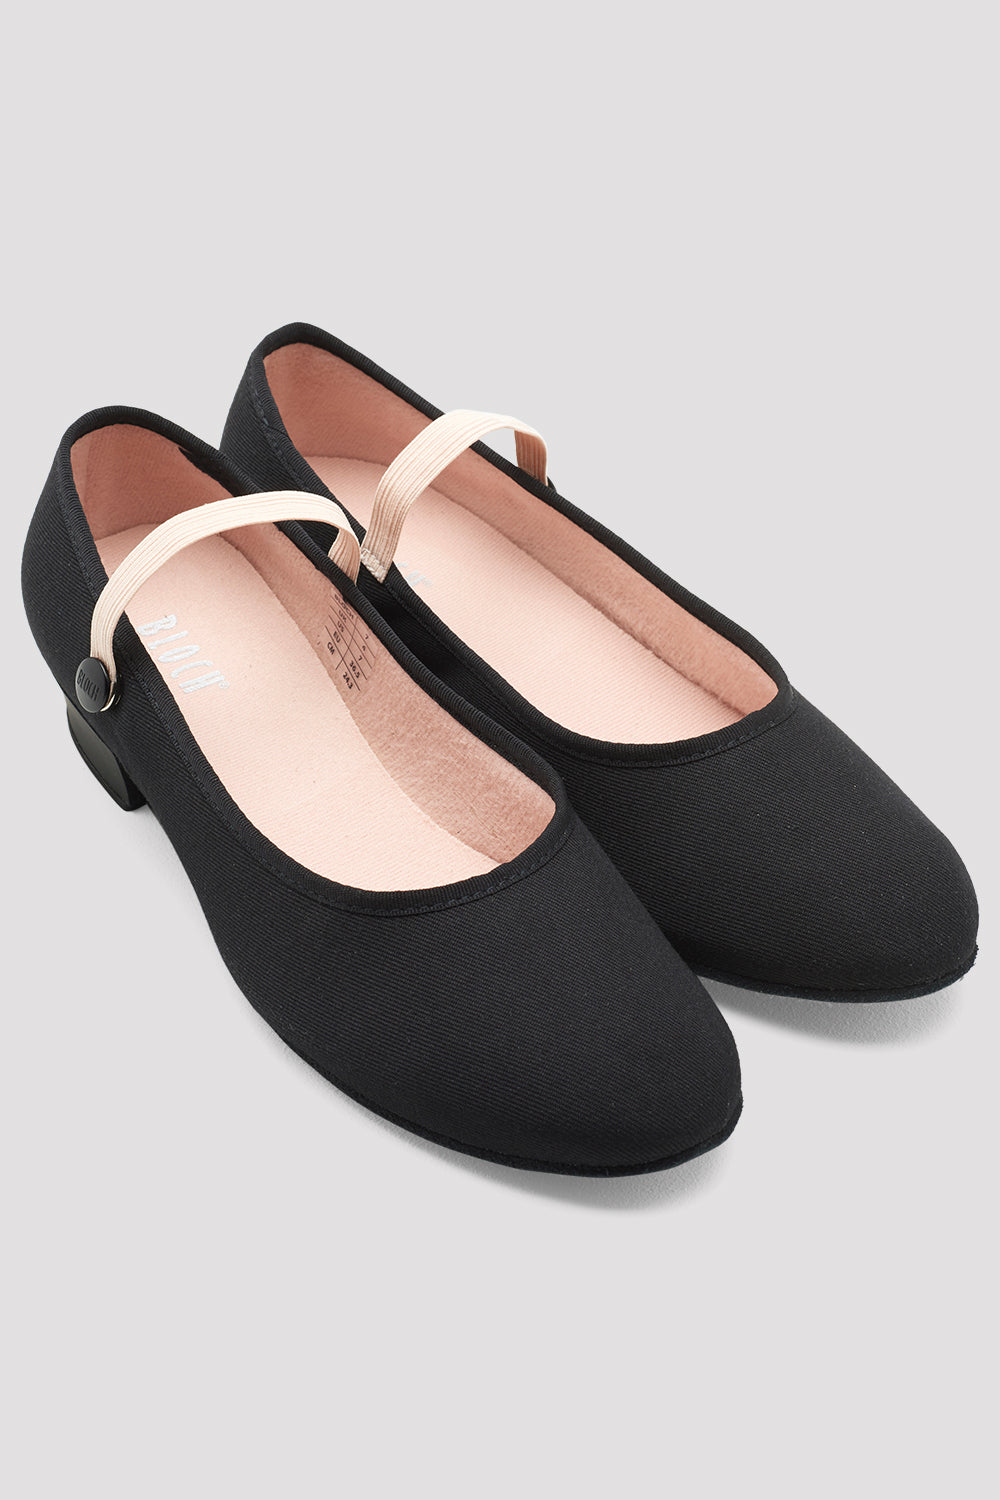 Girls Accent Low Heel Character Shoes